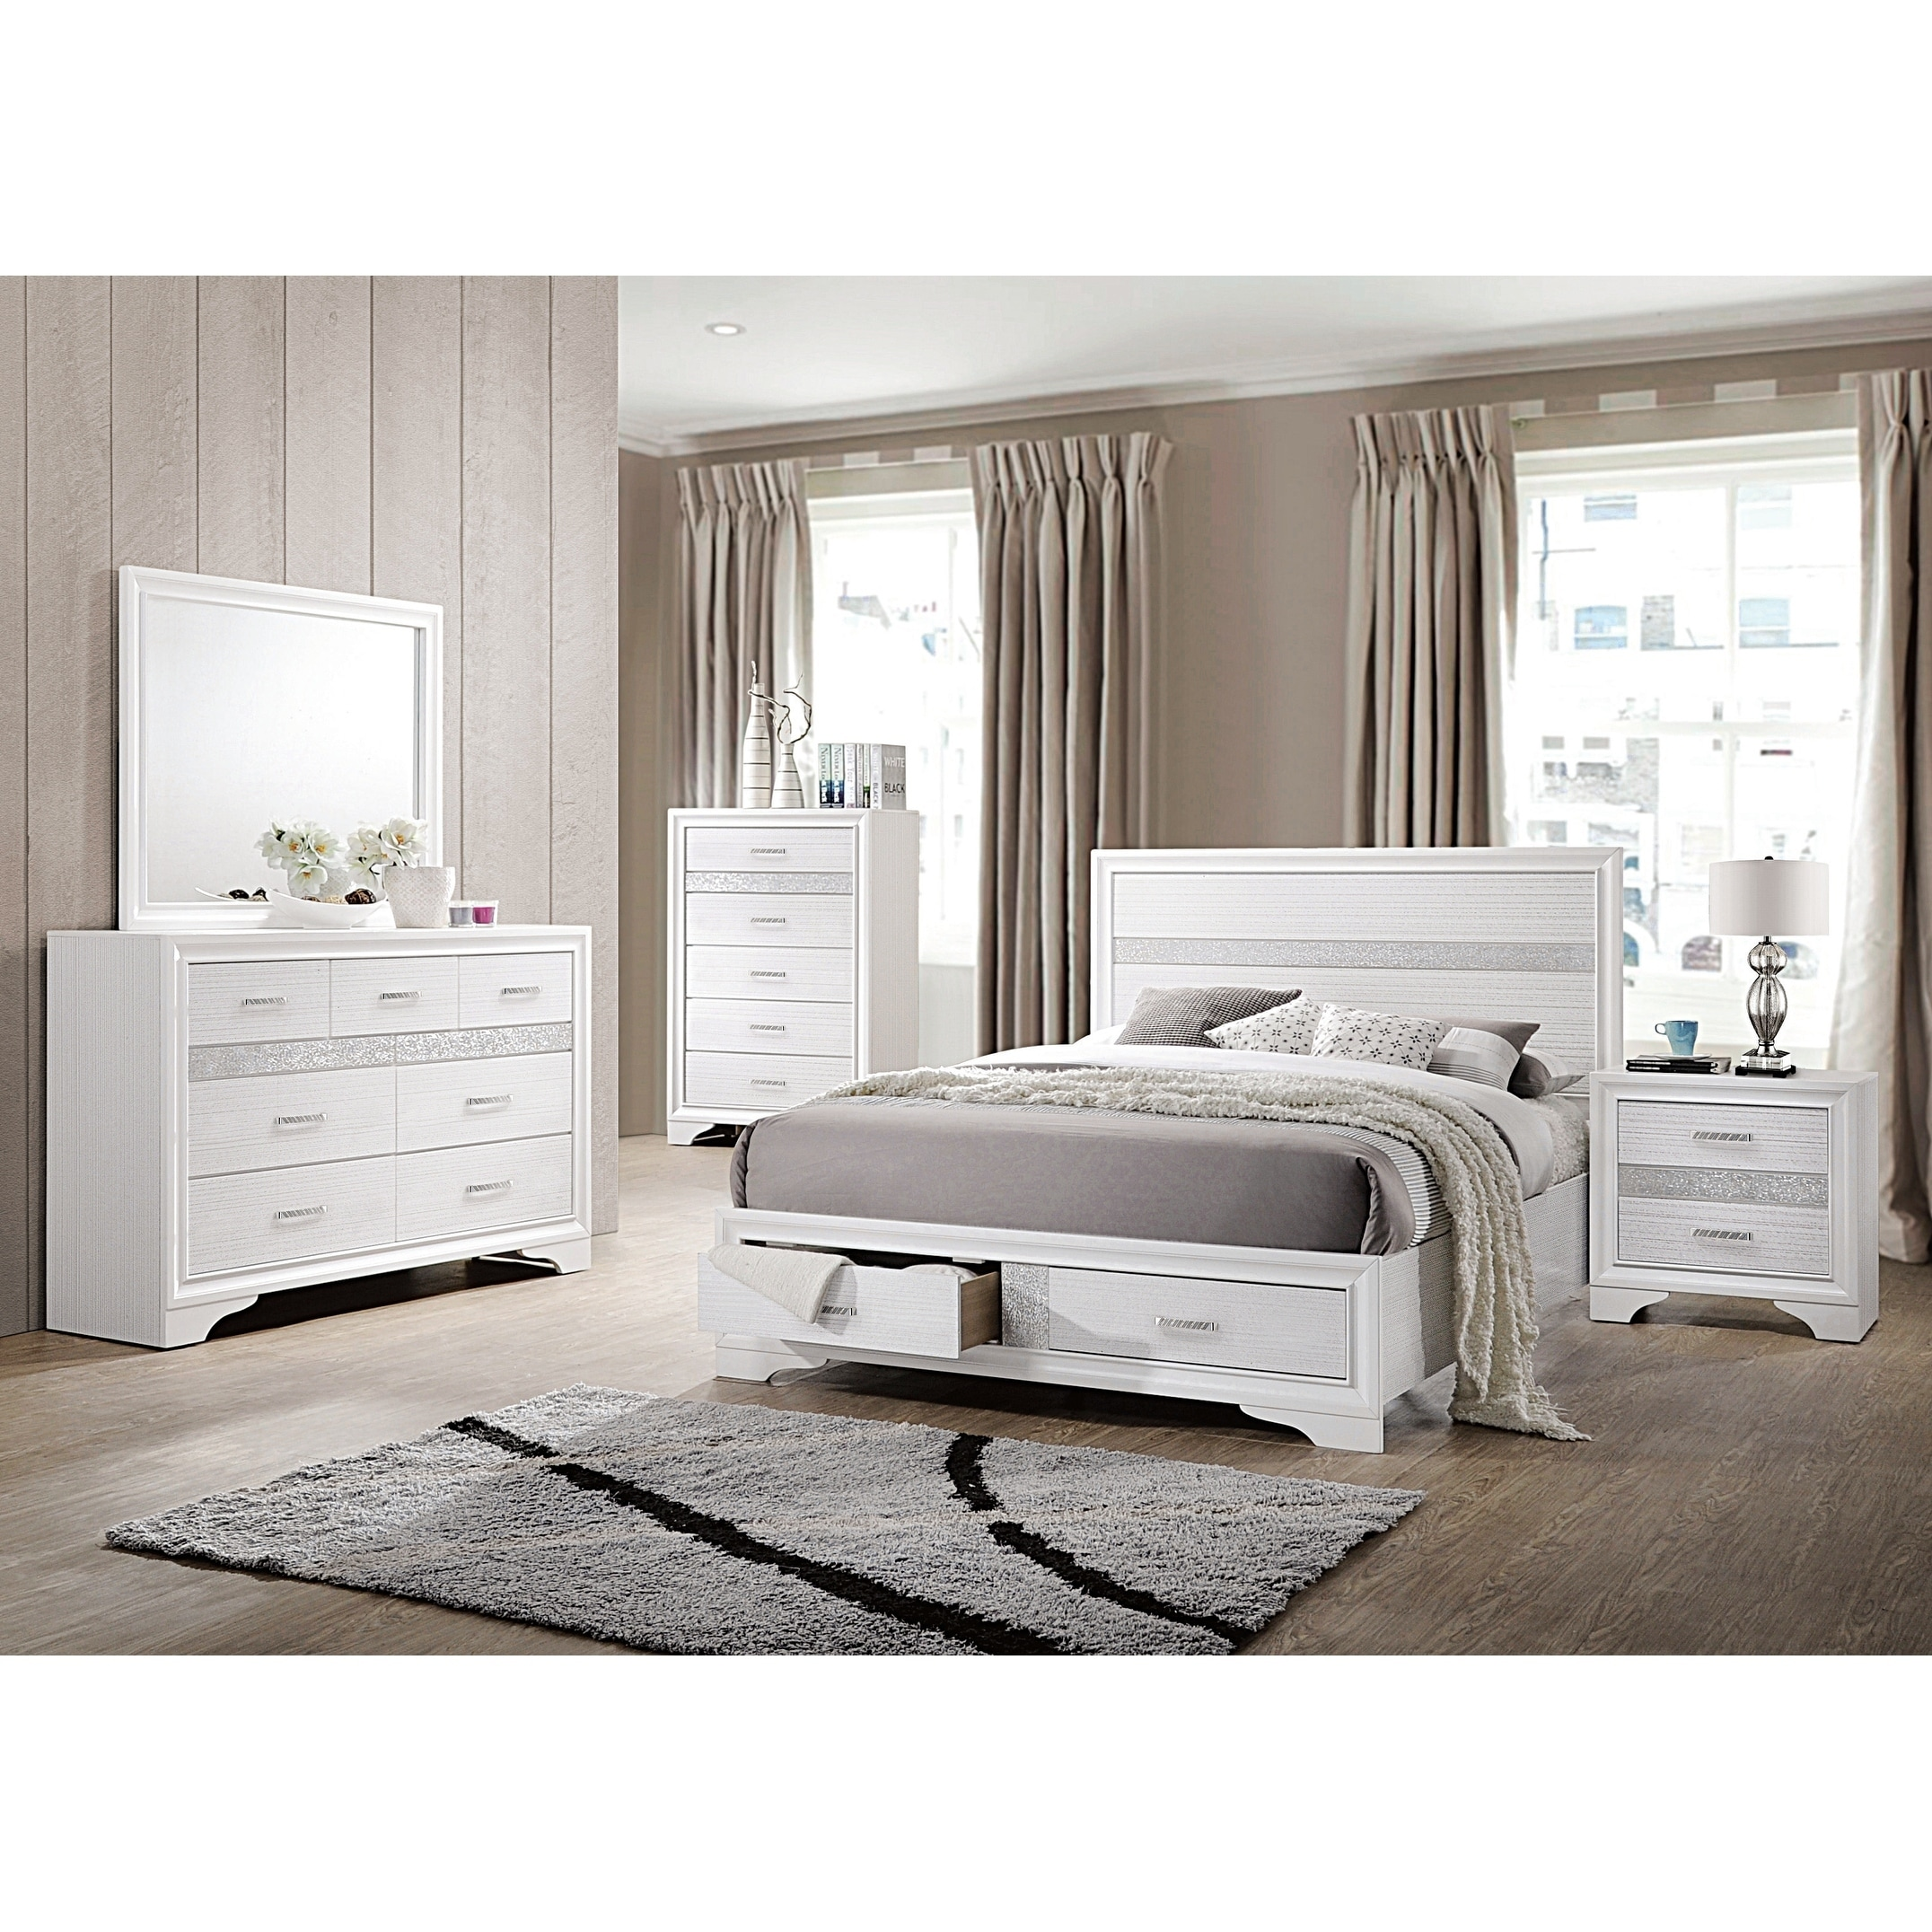 Shop Miranda Contemporary White 4-piece Bedroom Set - On Sale - Free ...